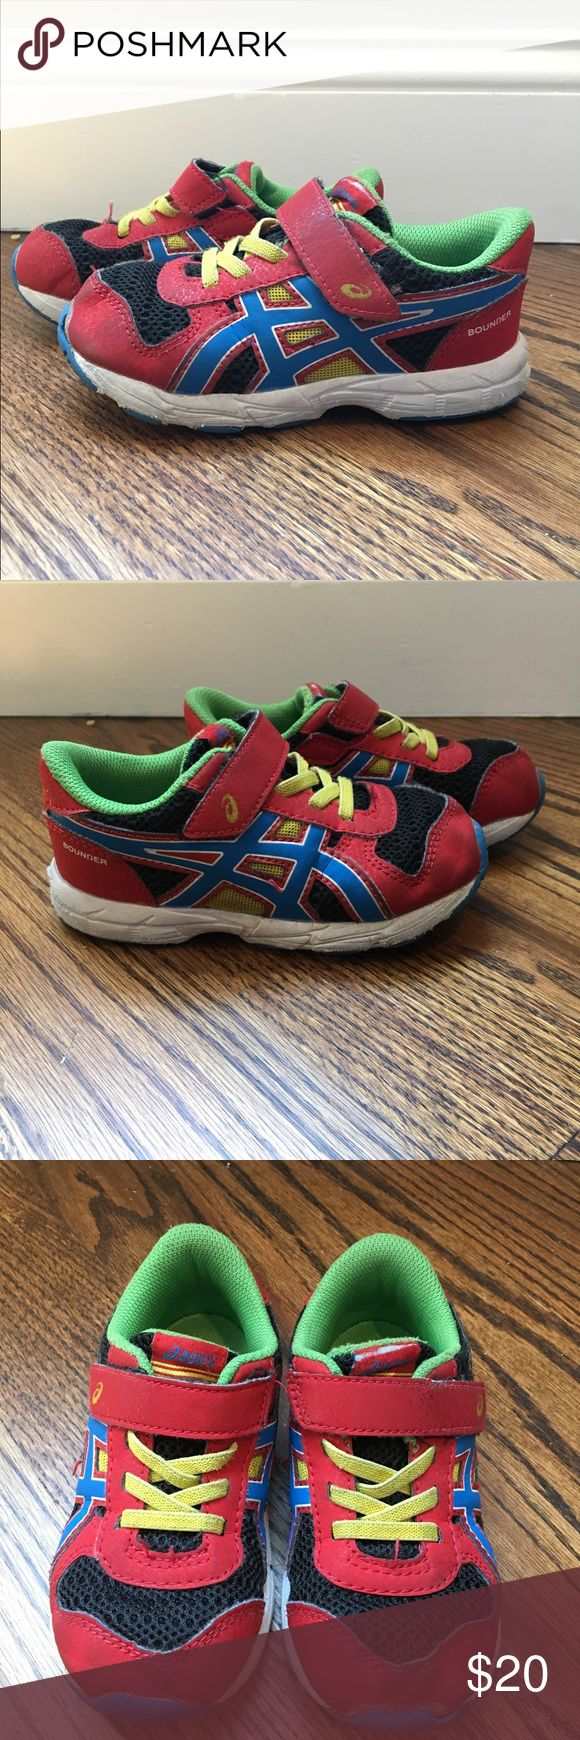 Asics toddler sneakers Asics toddler sneakers size 9. A lightweight, comfortable, sturdy shoe. Breathable upper with elastic laces and hook and loop fastener. Cushioned platform is soft and extra flexible. Great condition from a pet free/smoke free home. Asics Shoes Sneakers